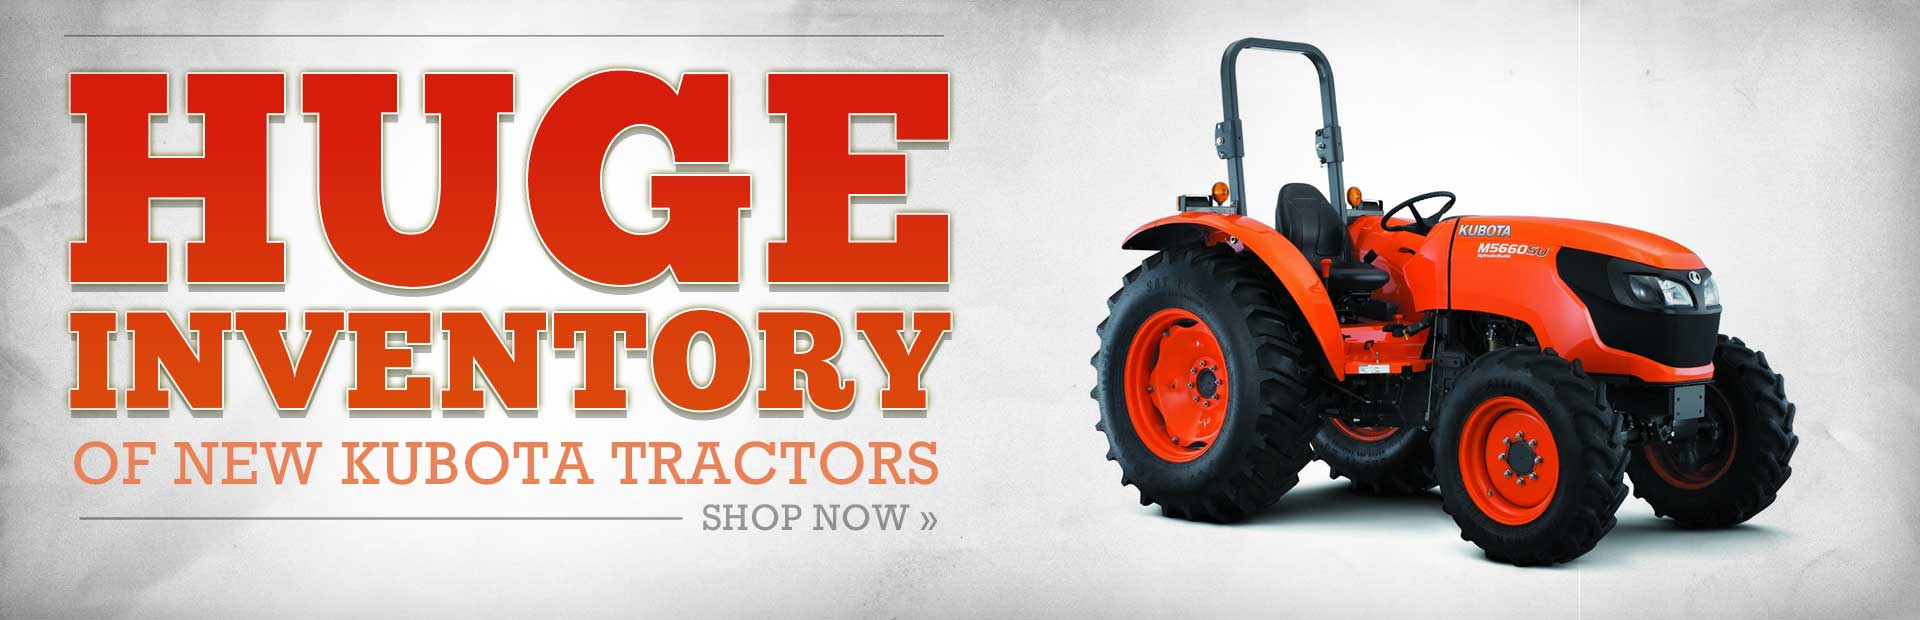 Click here to view our huge inventory of Kubota tractors!